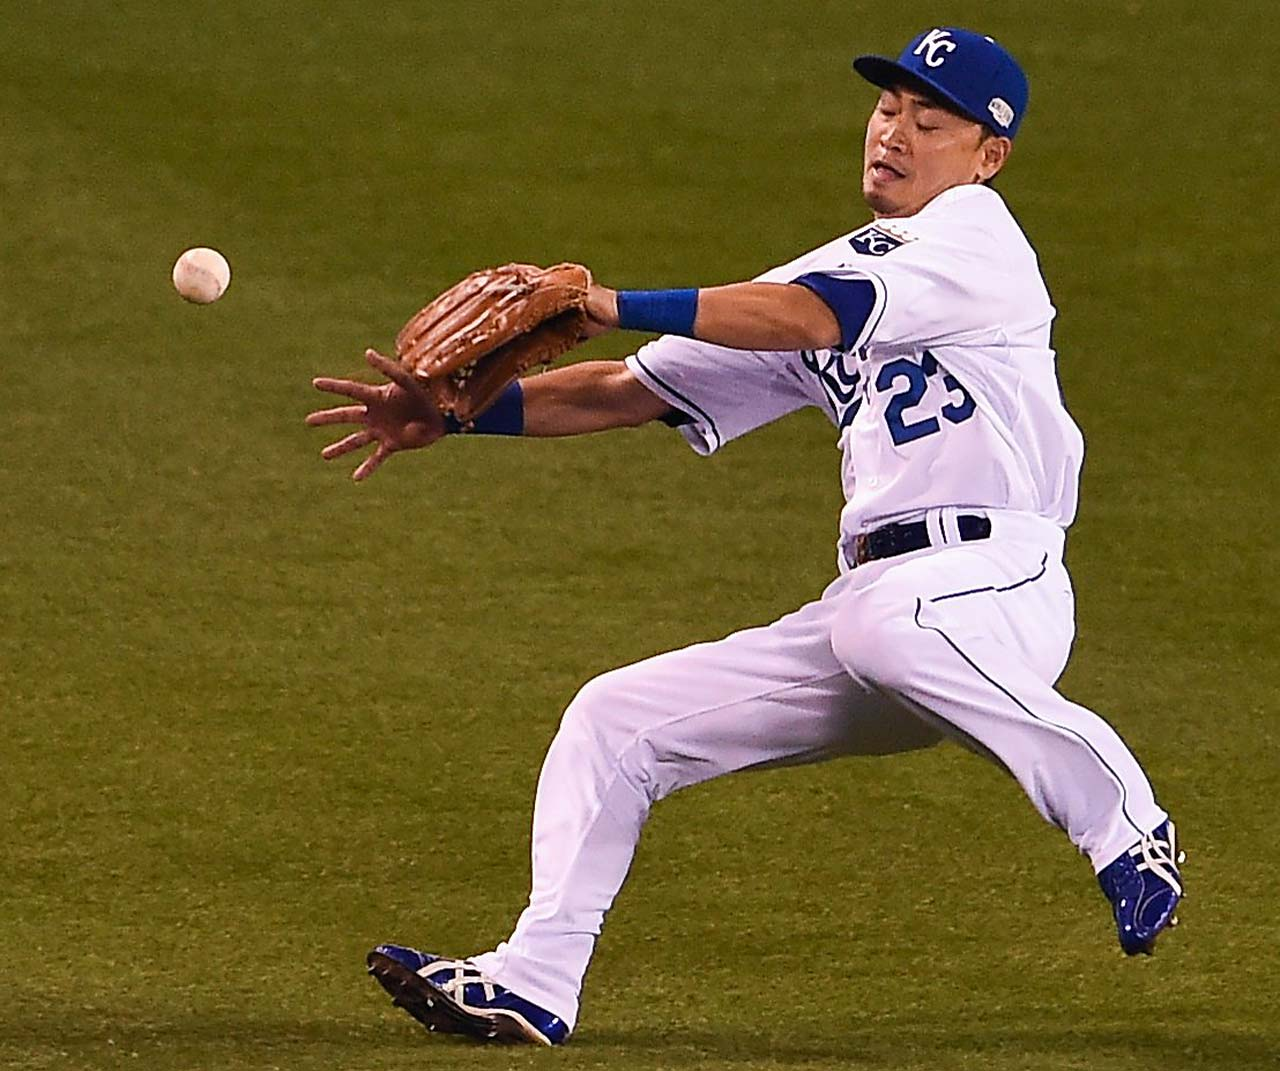 Royals right fielder Norichika Aoki couldn't get to this ball in time, resulting in a triple by Joe Panik.